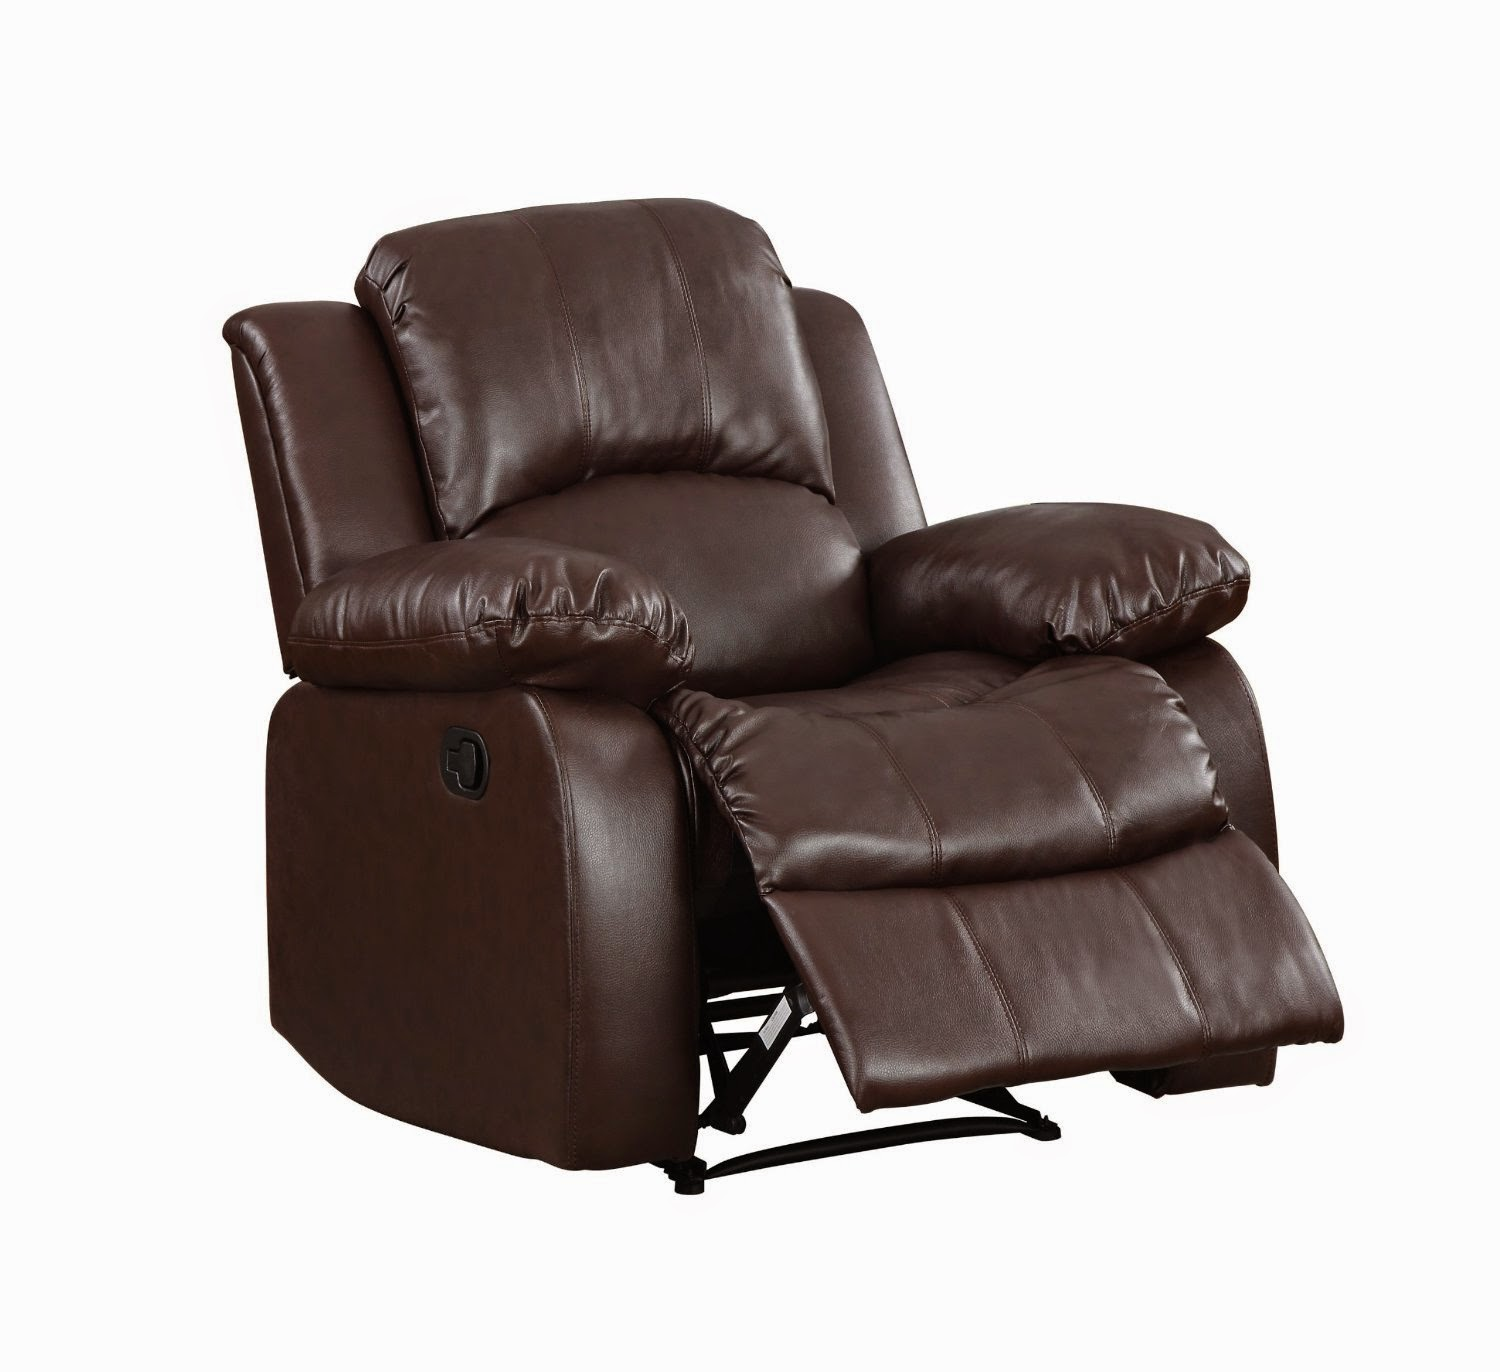 Cheap reclining sofas sale leather reclining sofa costco Leather sofa and loveseat recliner